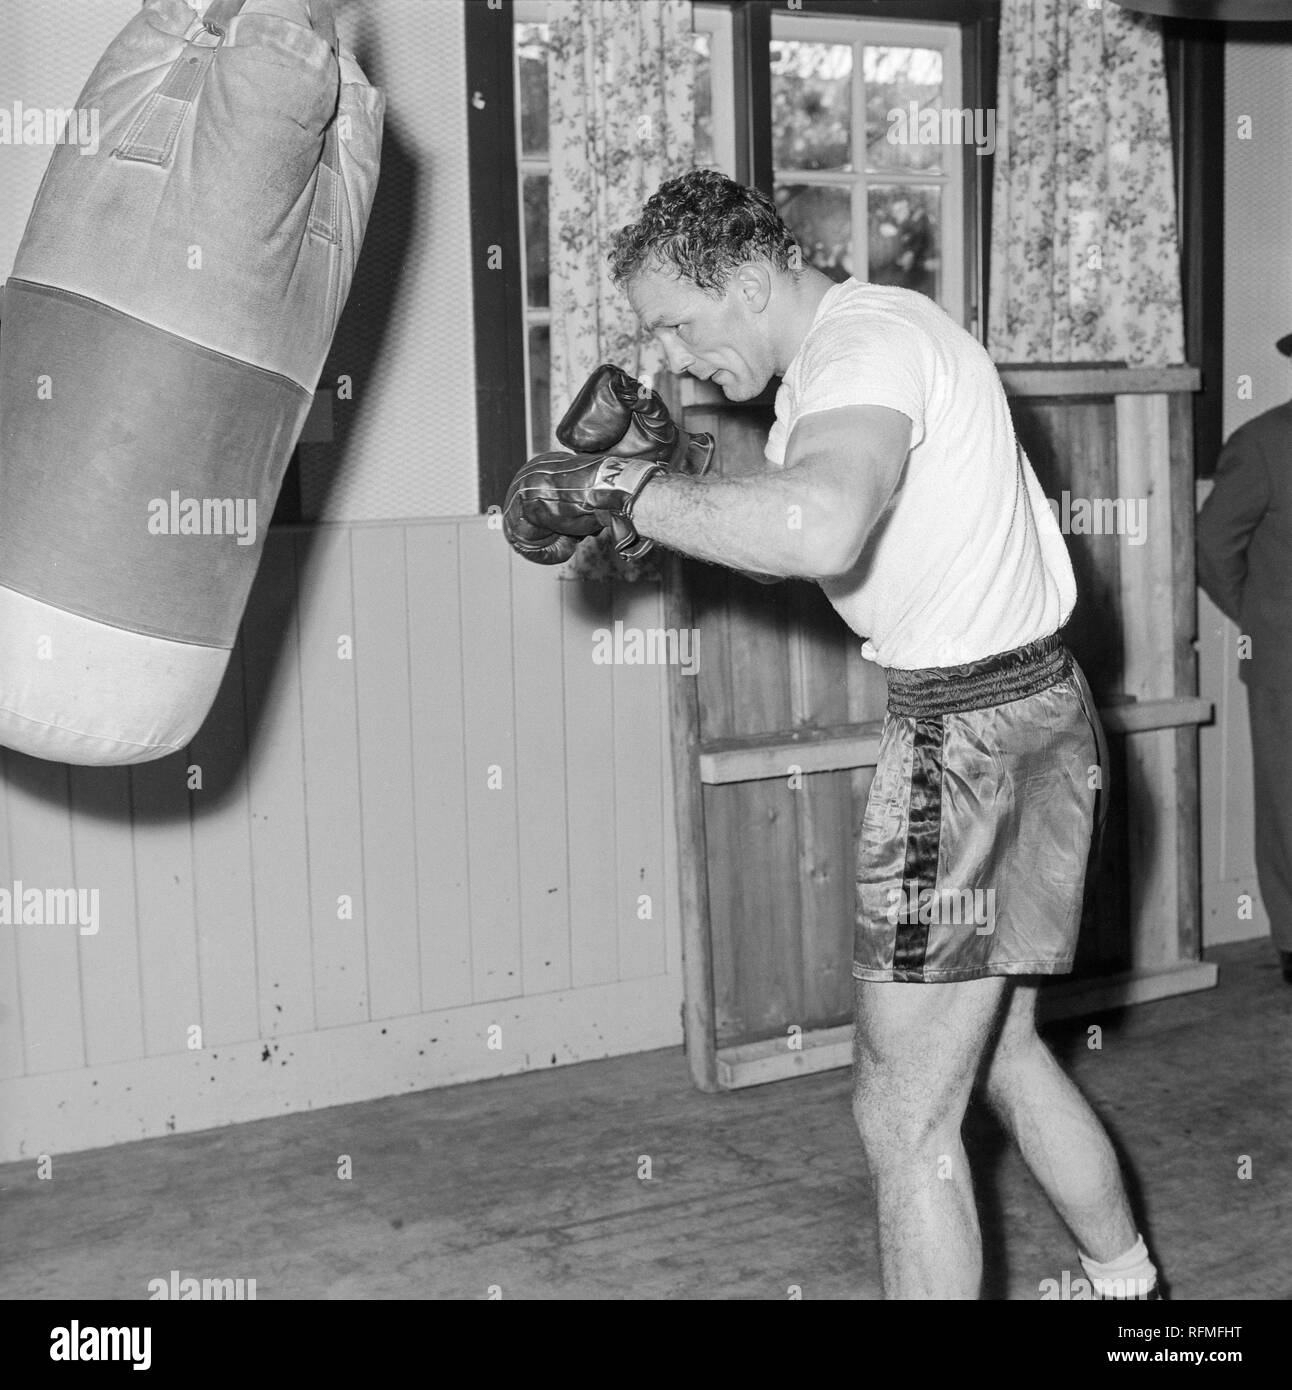 English heavyweight boxer Henry Cooper trying in a gym in England during the 1960s. - Stock Image